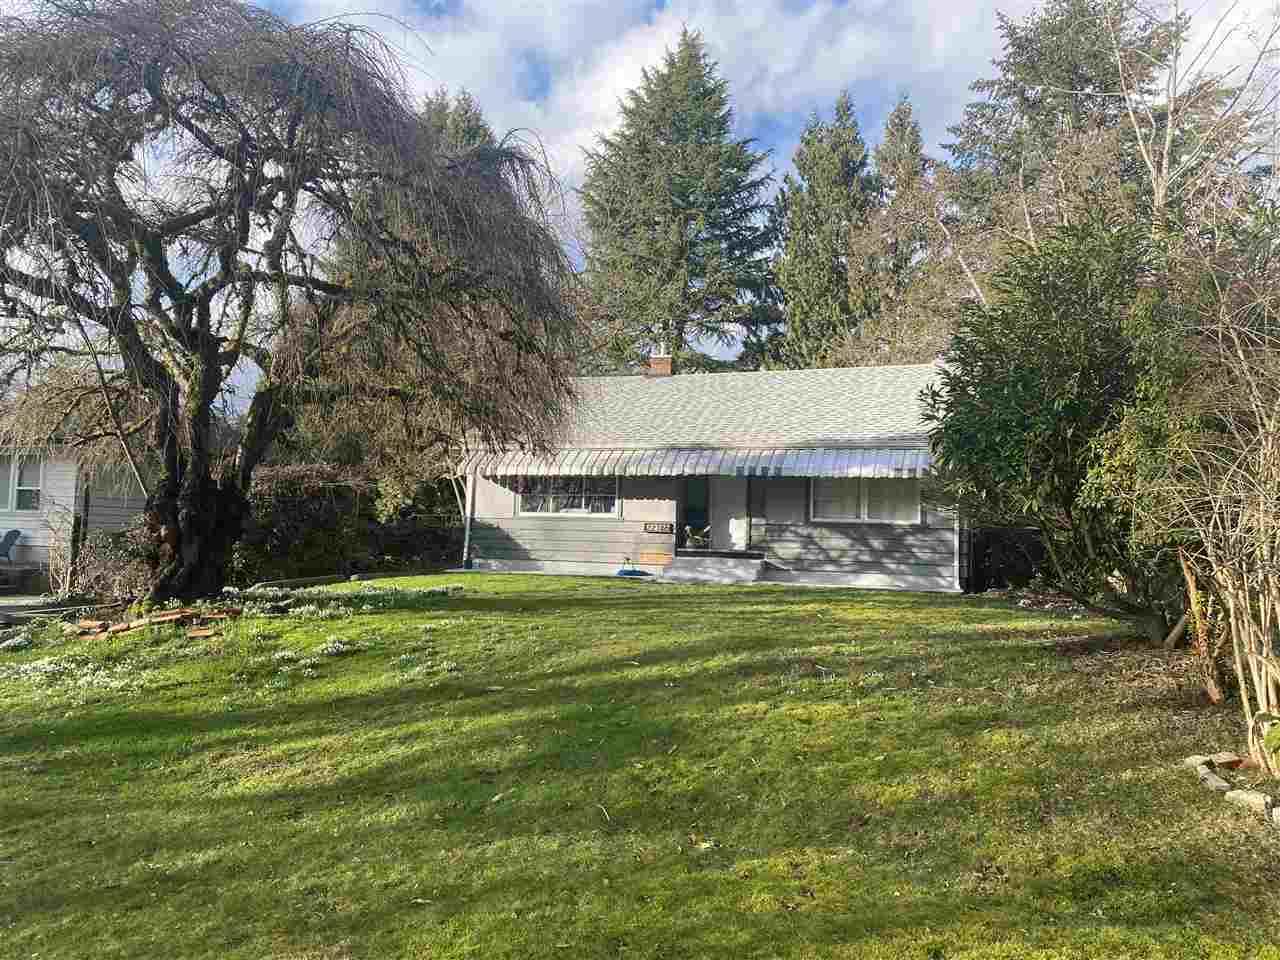 Attention Investors! Amazing first time investment property or add to you portfolio. Currently tenanted. Huge lot, lots of opportunity here. 1936 sq ft rancher with basement, centrally located. Underground garage.